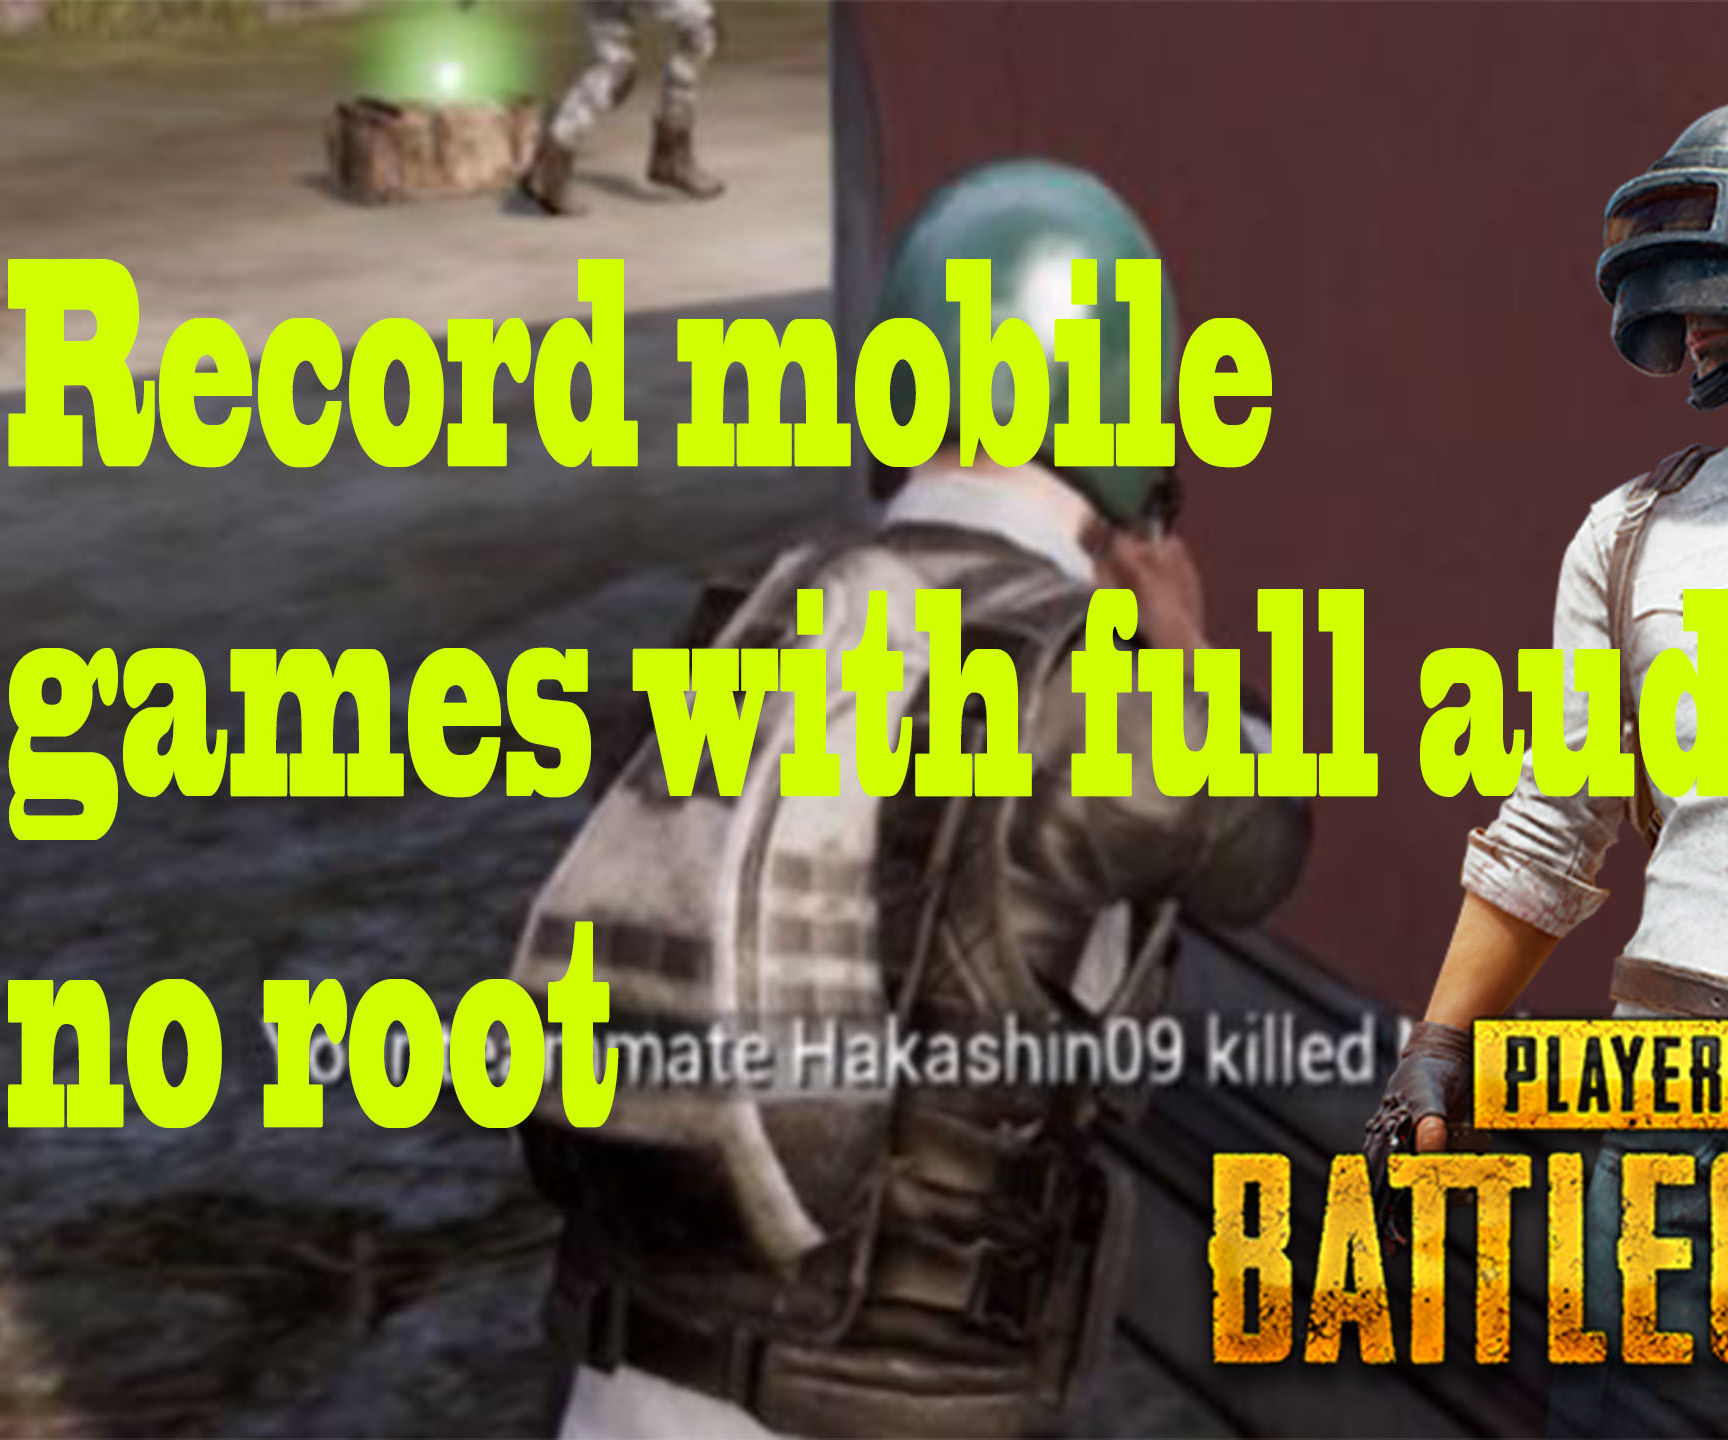 How to Record Mobile Games With Voice Chat Audio *no Root: 4 Steps